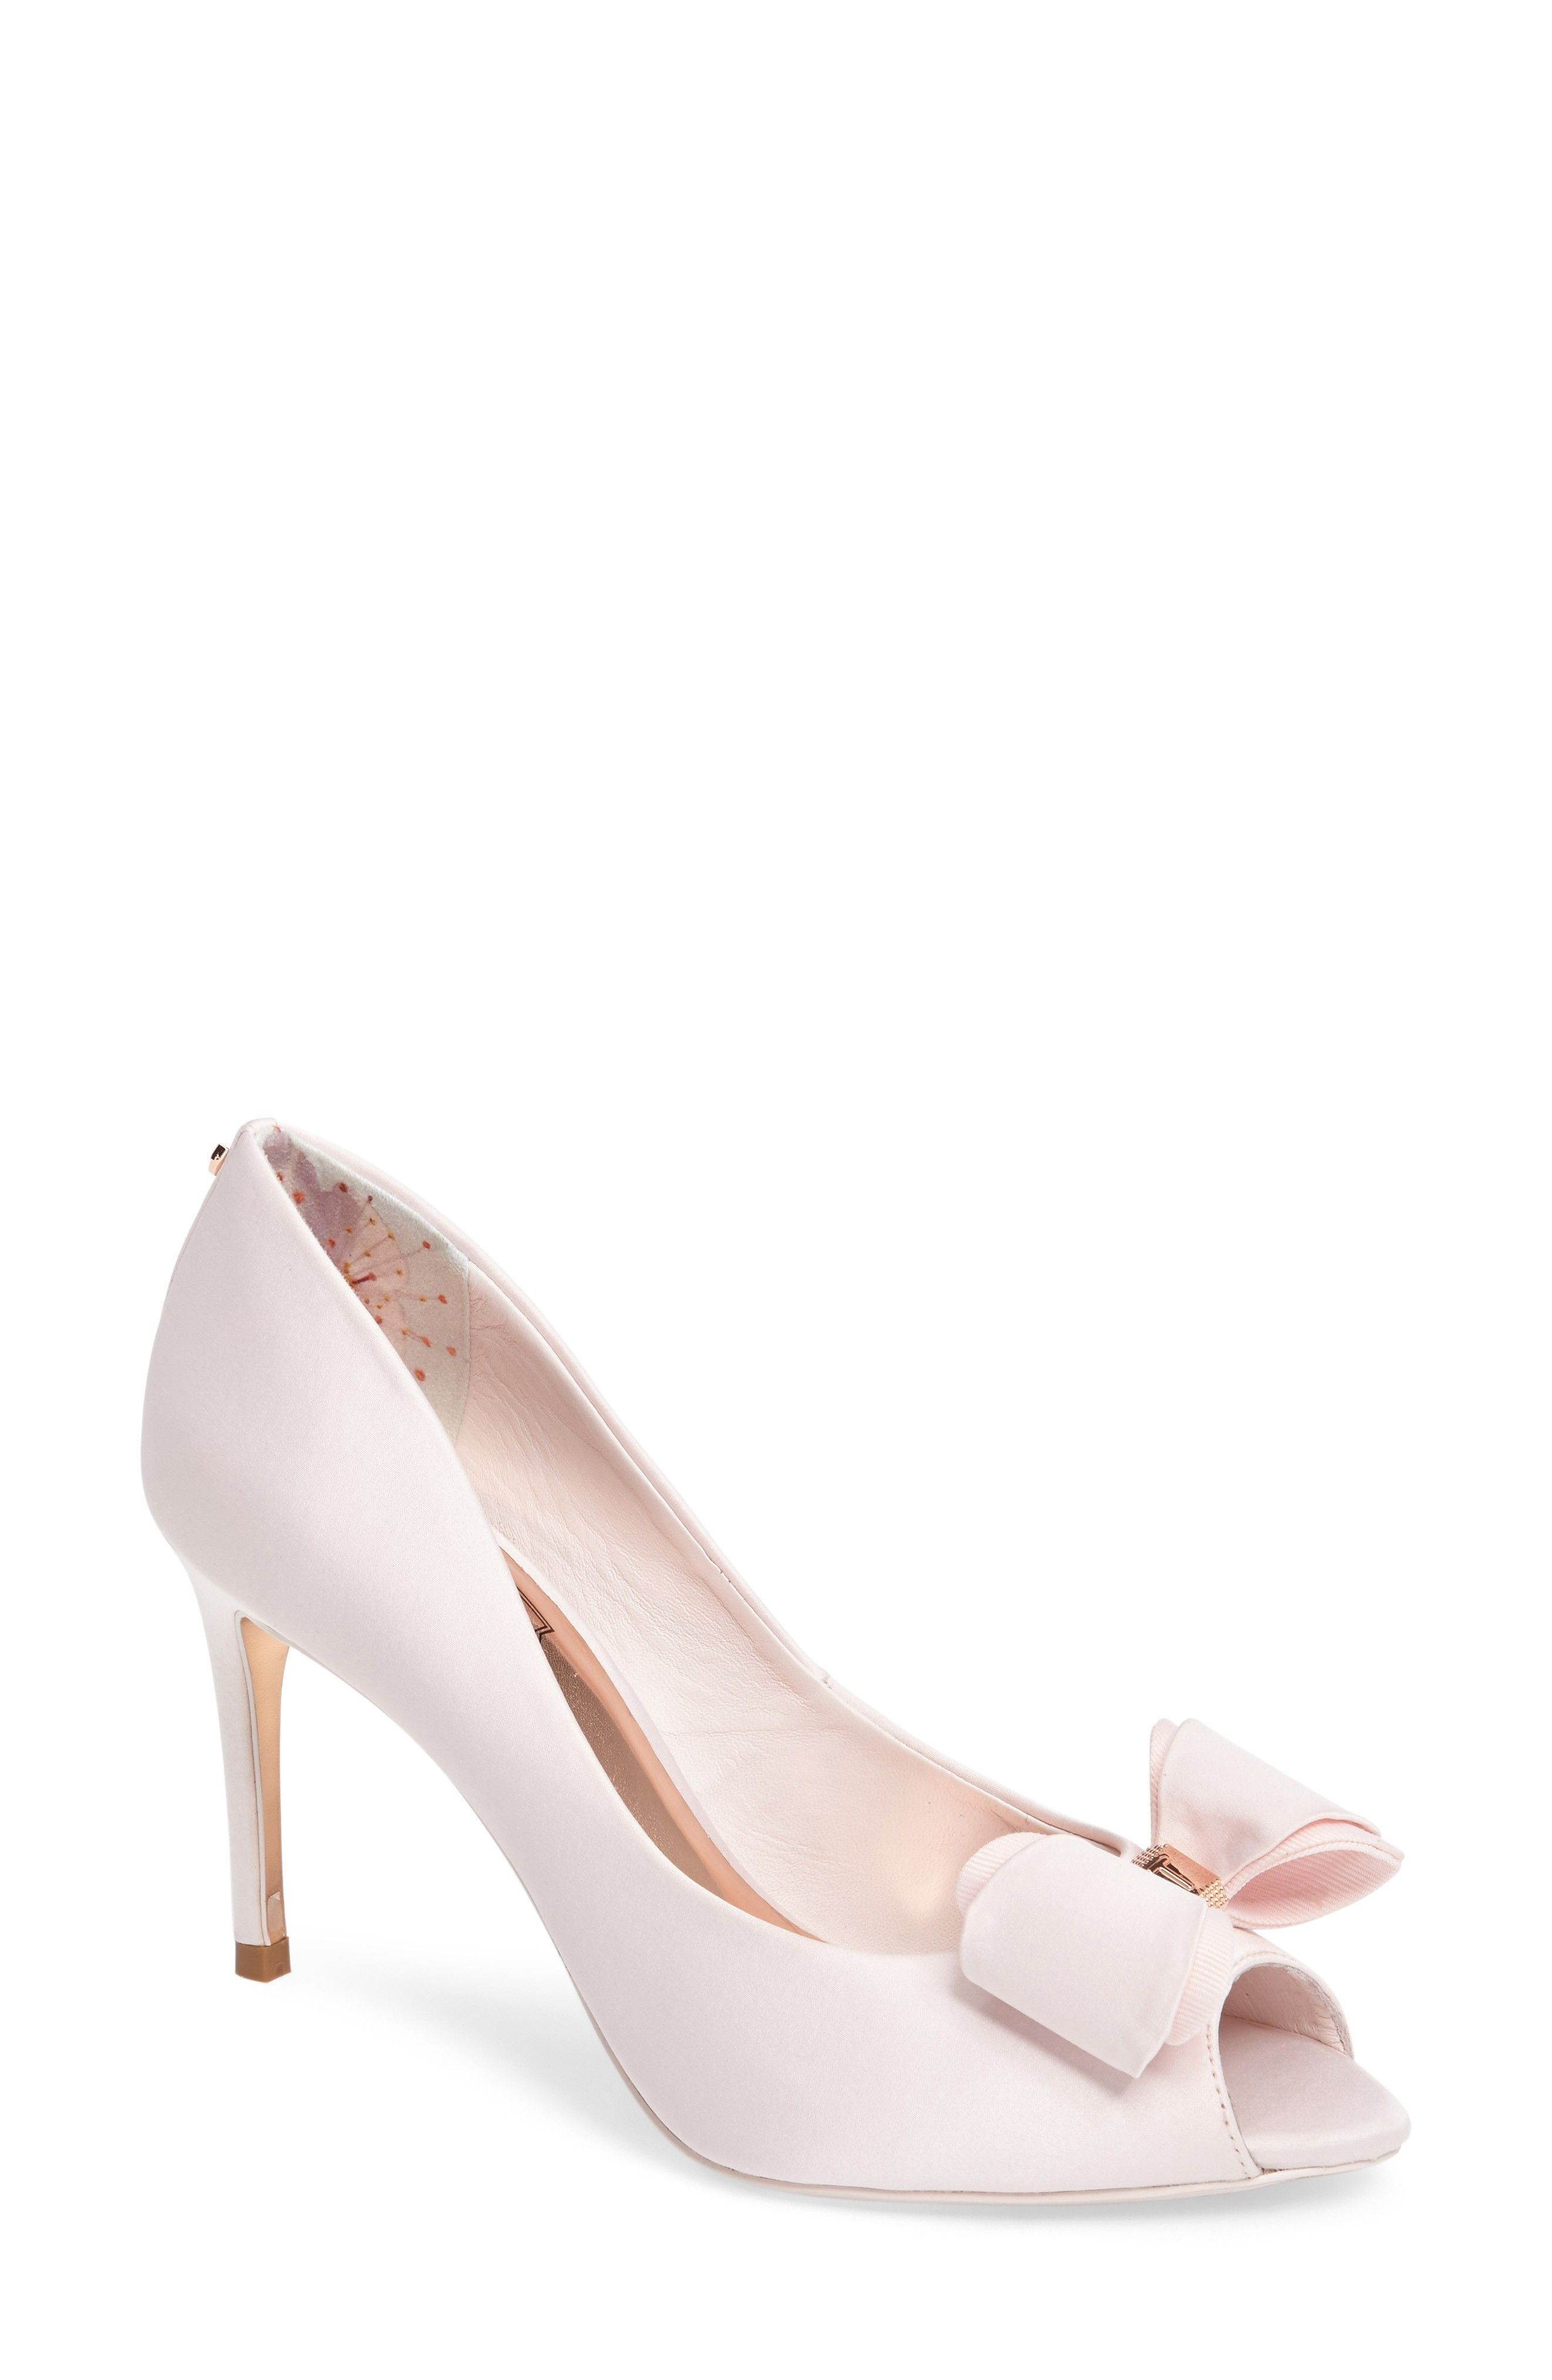 37f08715cb TED BAKER LONDON | Alifair Open Toe Pump #Shoes #Pumps #TED BAKER LONDON